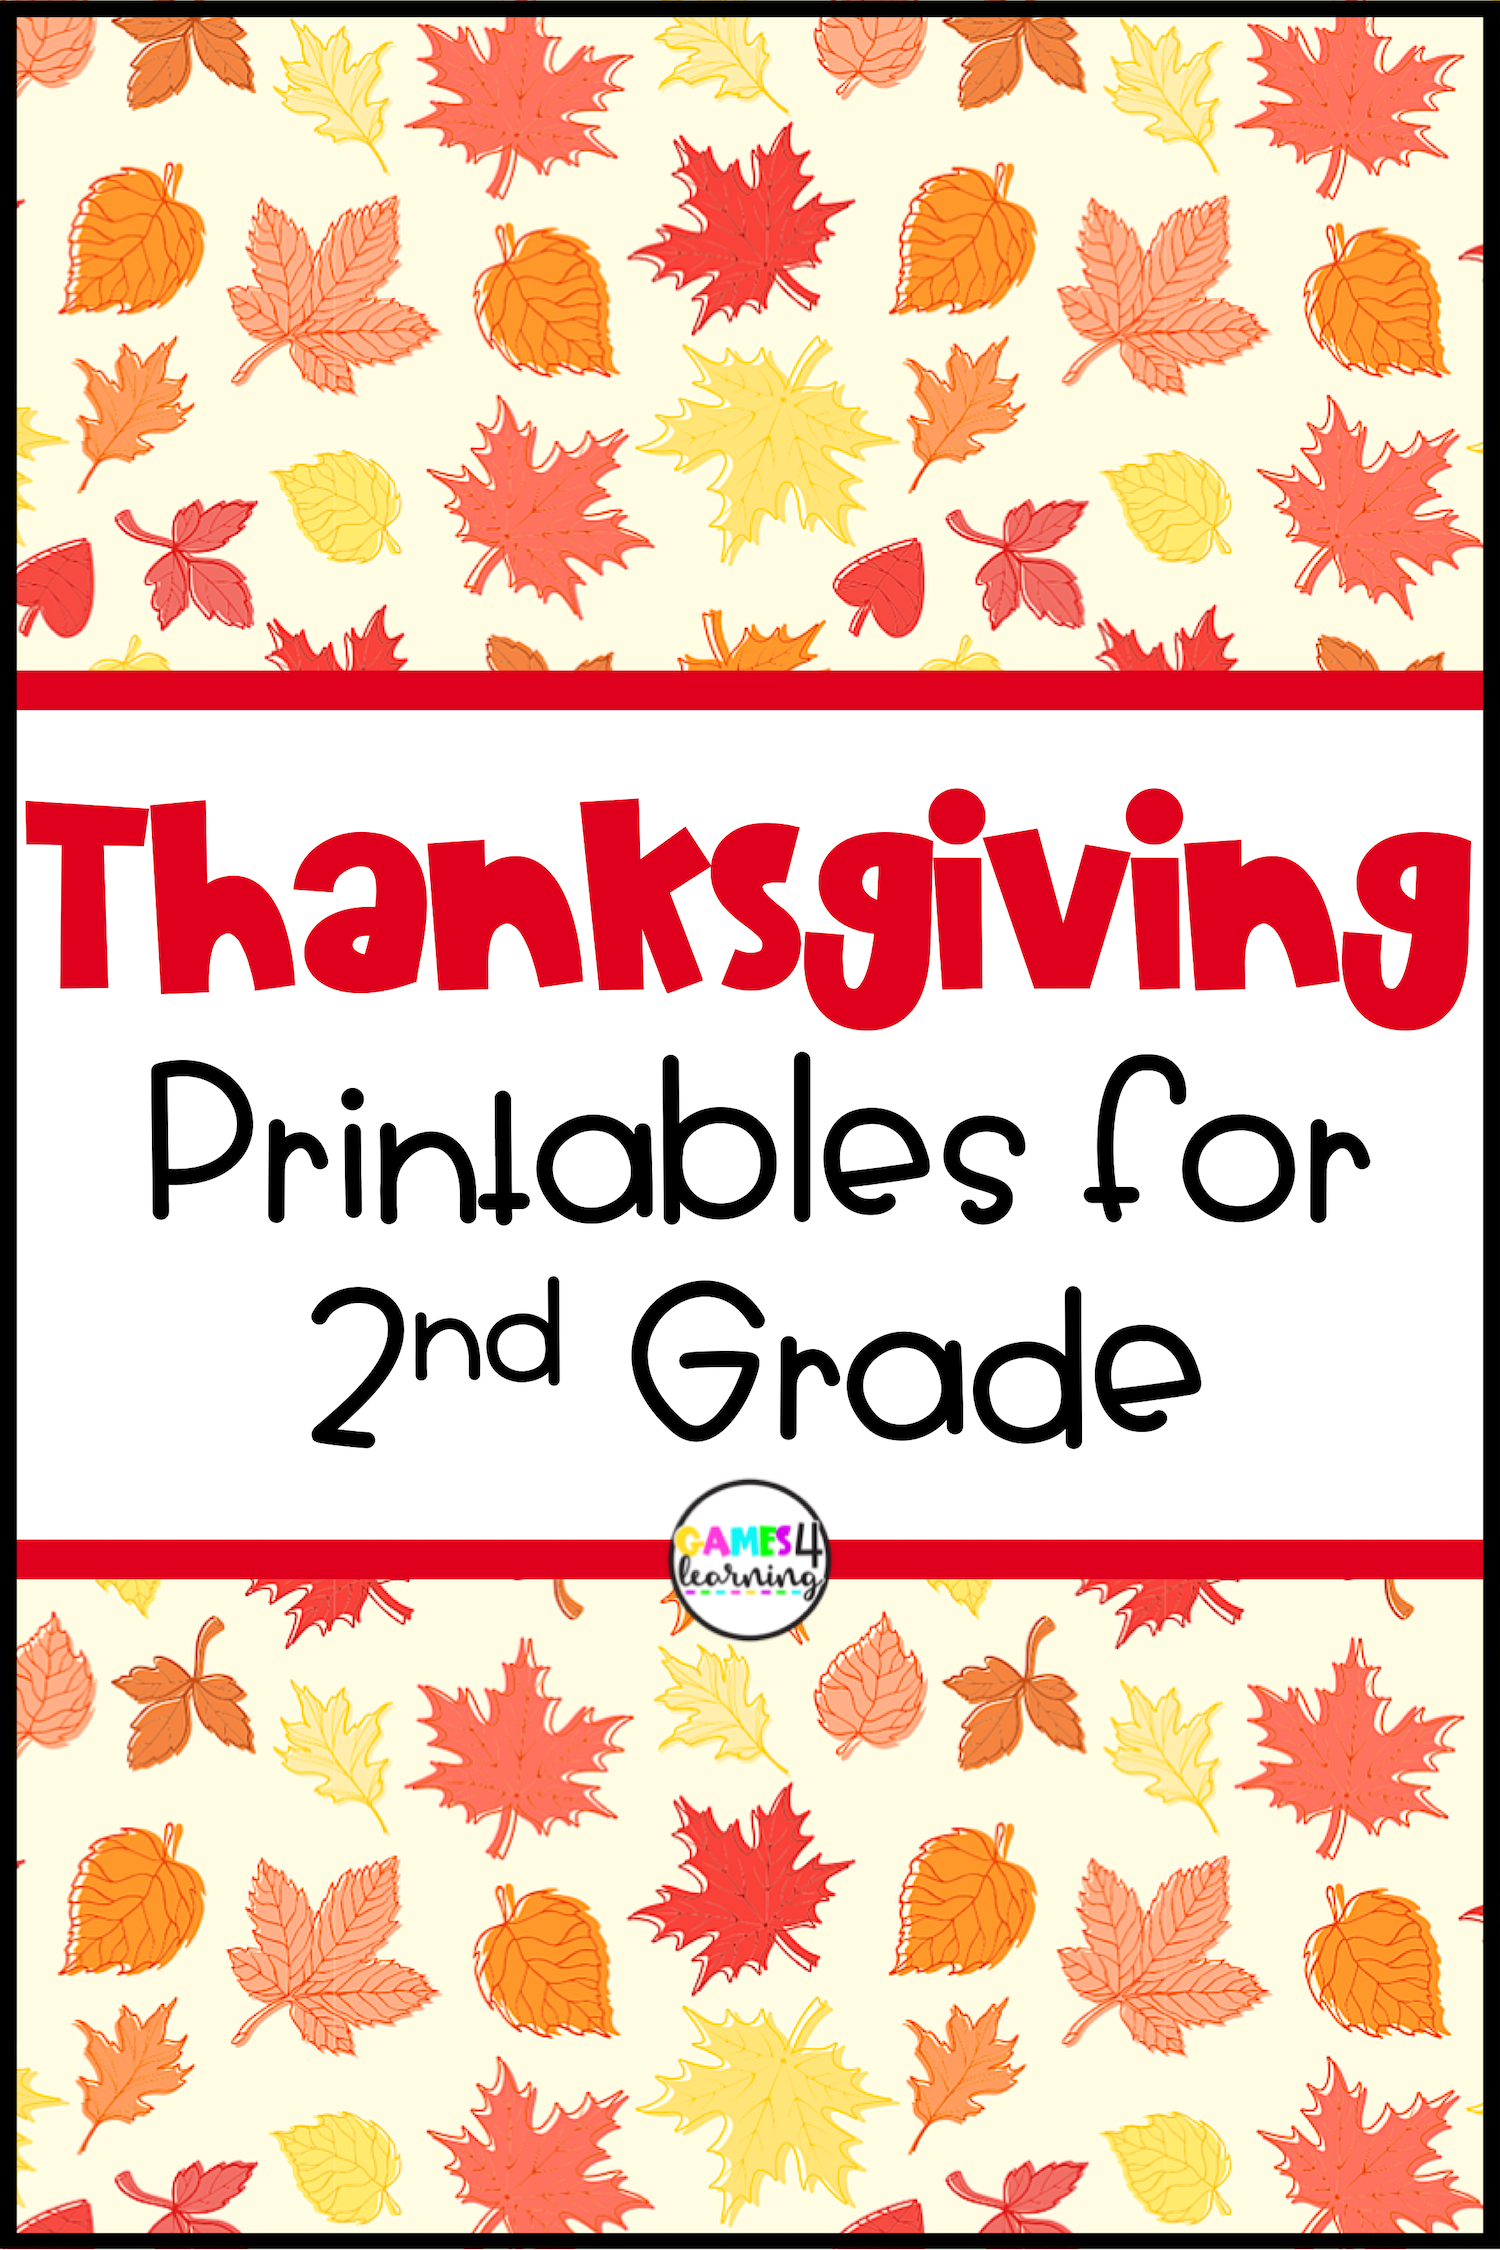 These Thanksgiving Printables For Second Grade Will Give